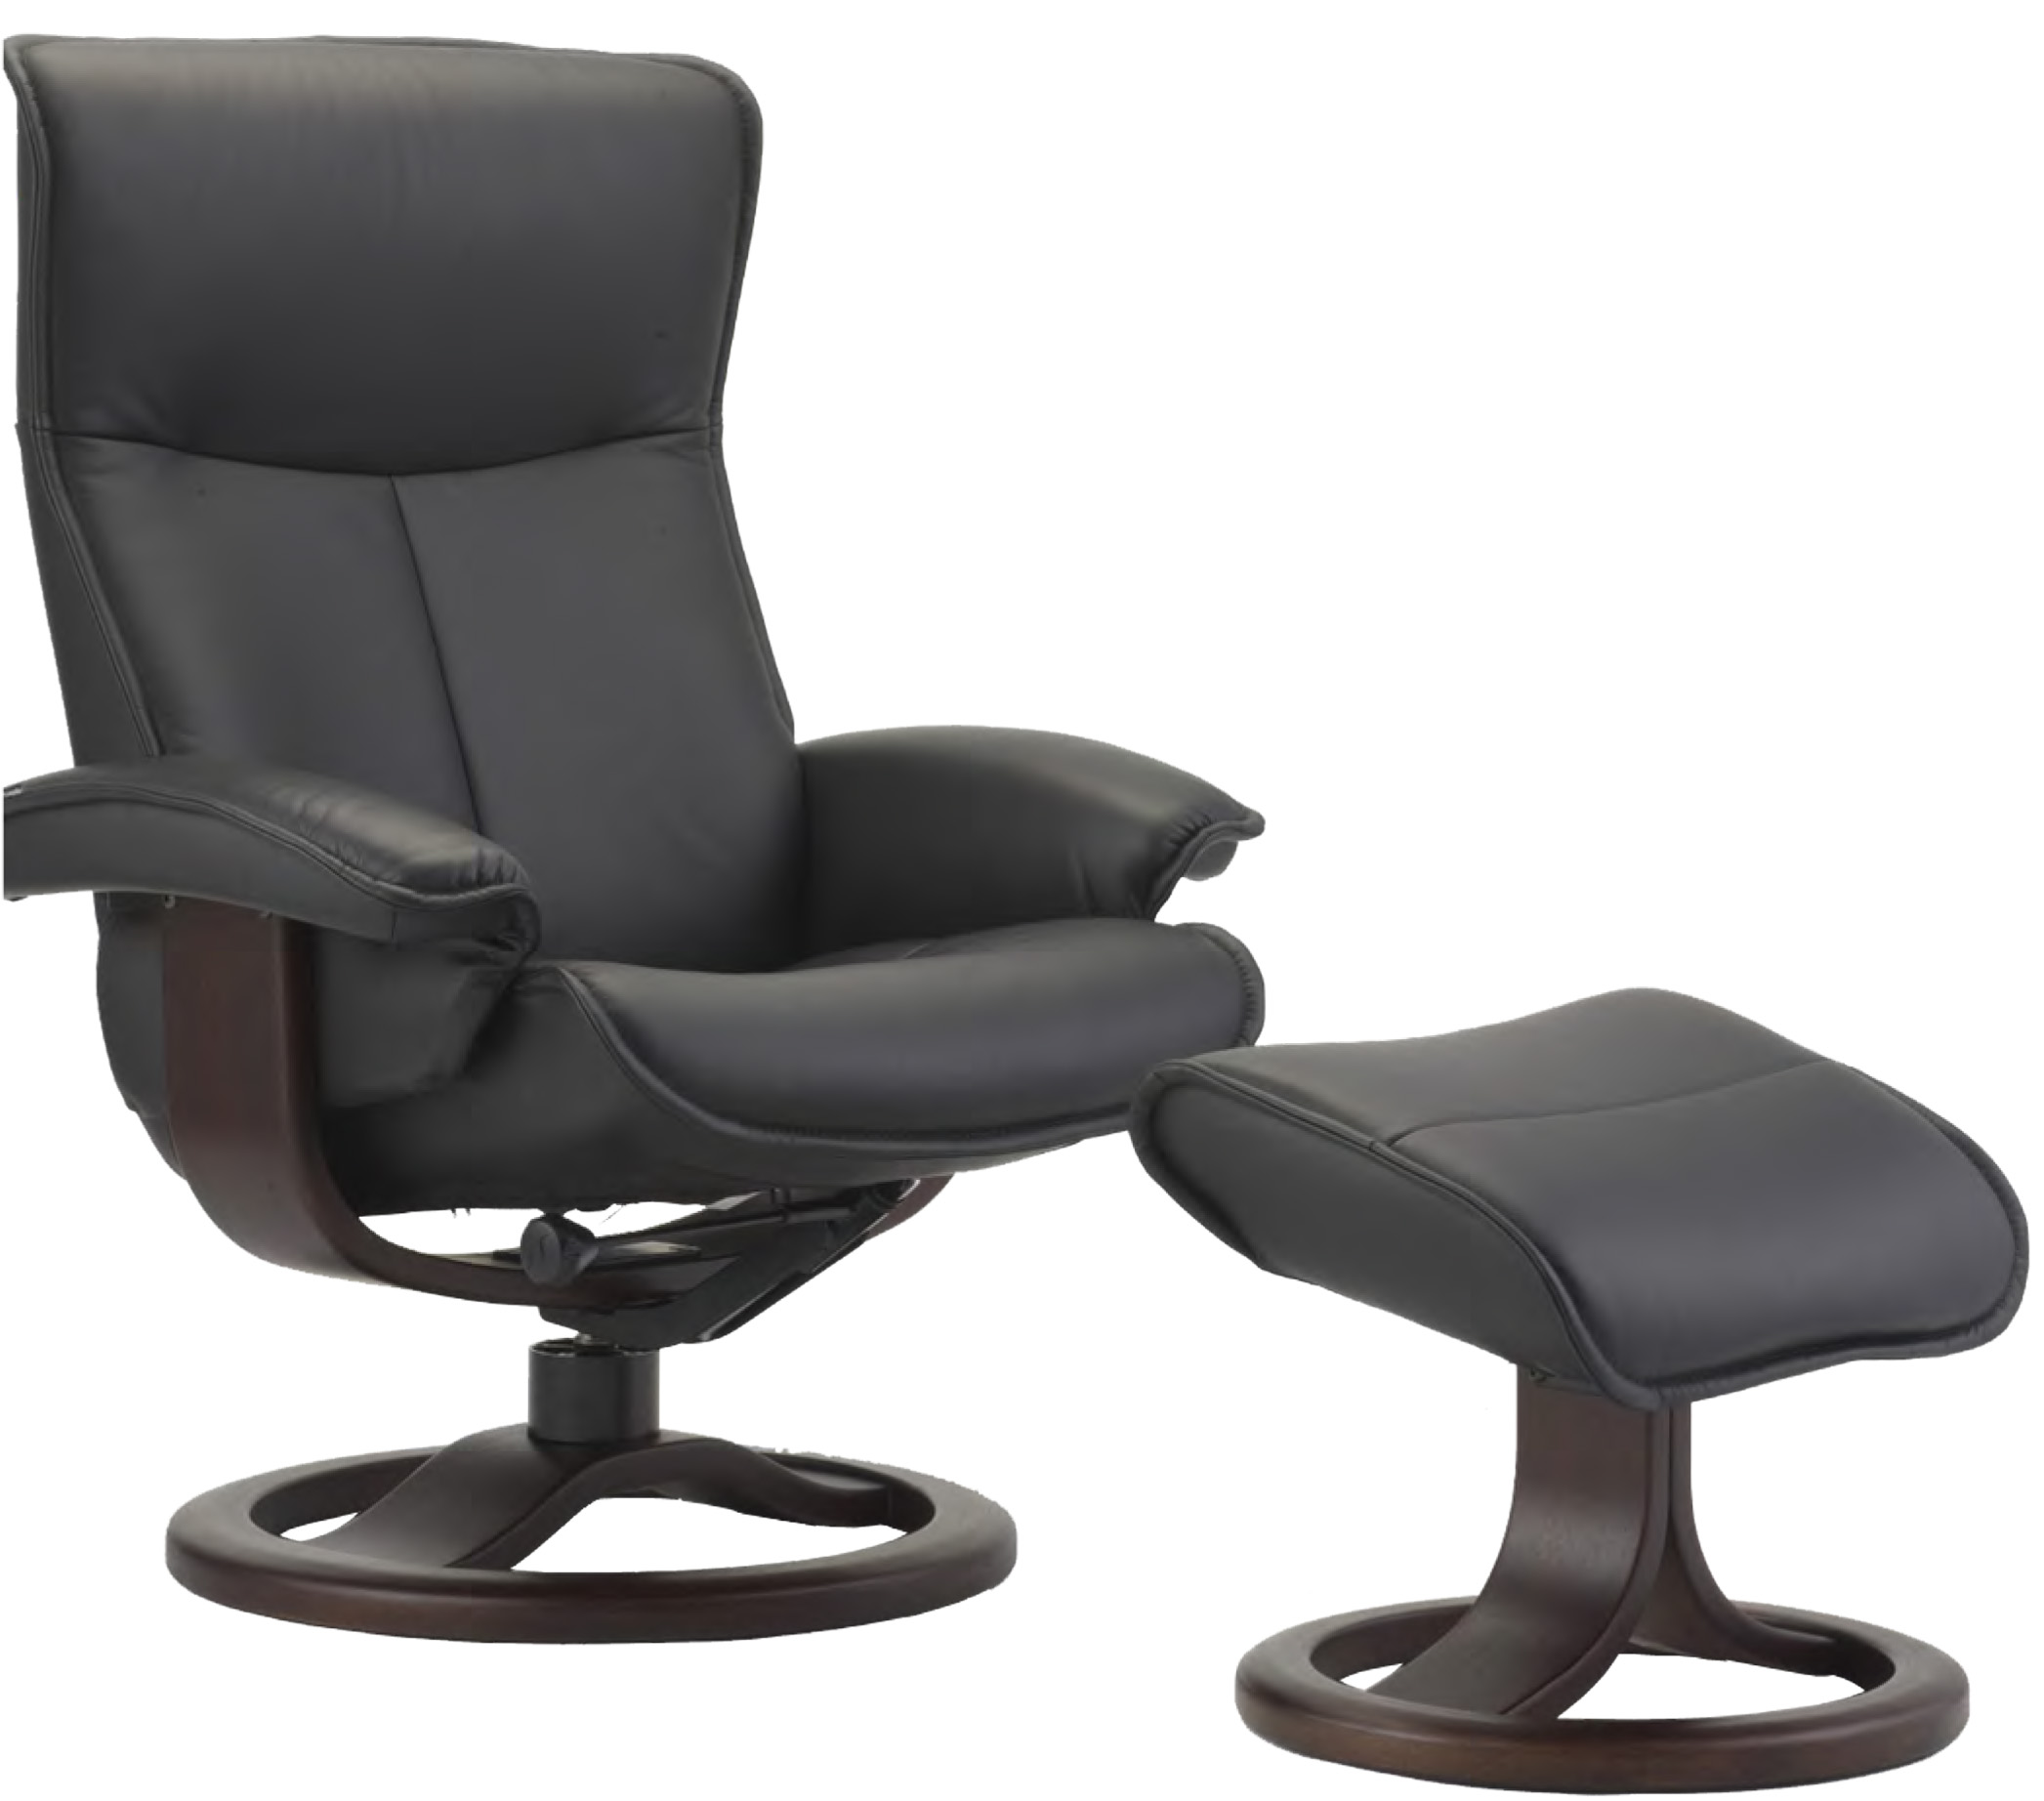 Fjords Senator Ergonomic Leather Recliner Chair Ottoman